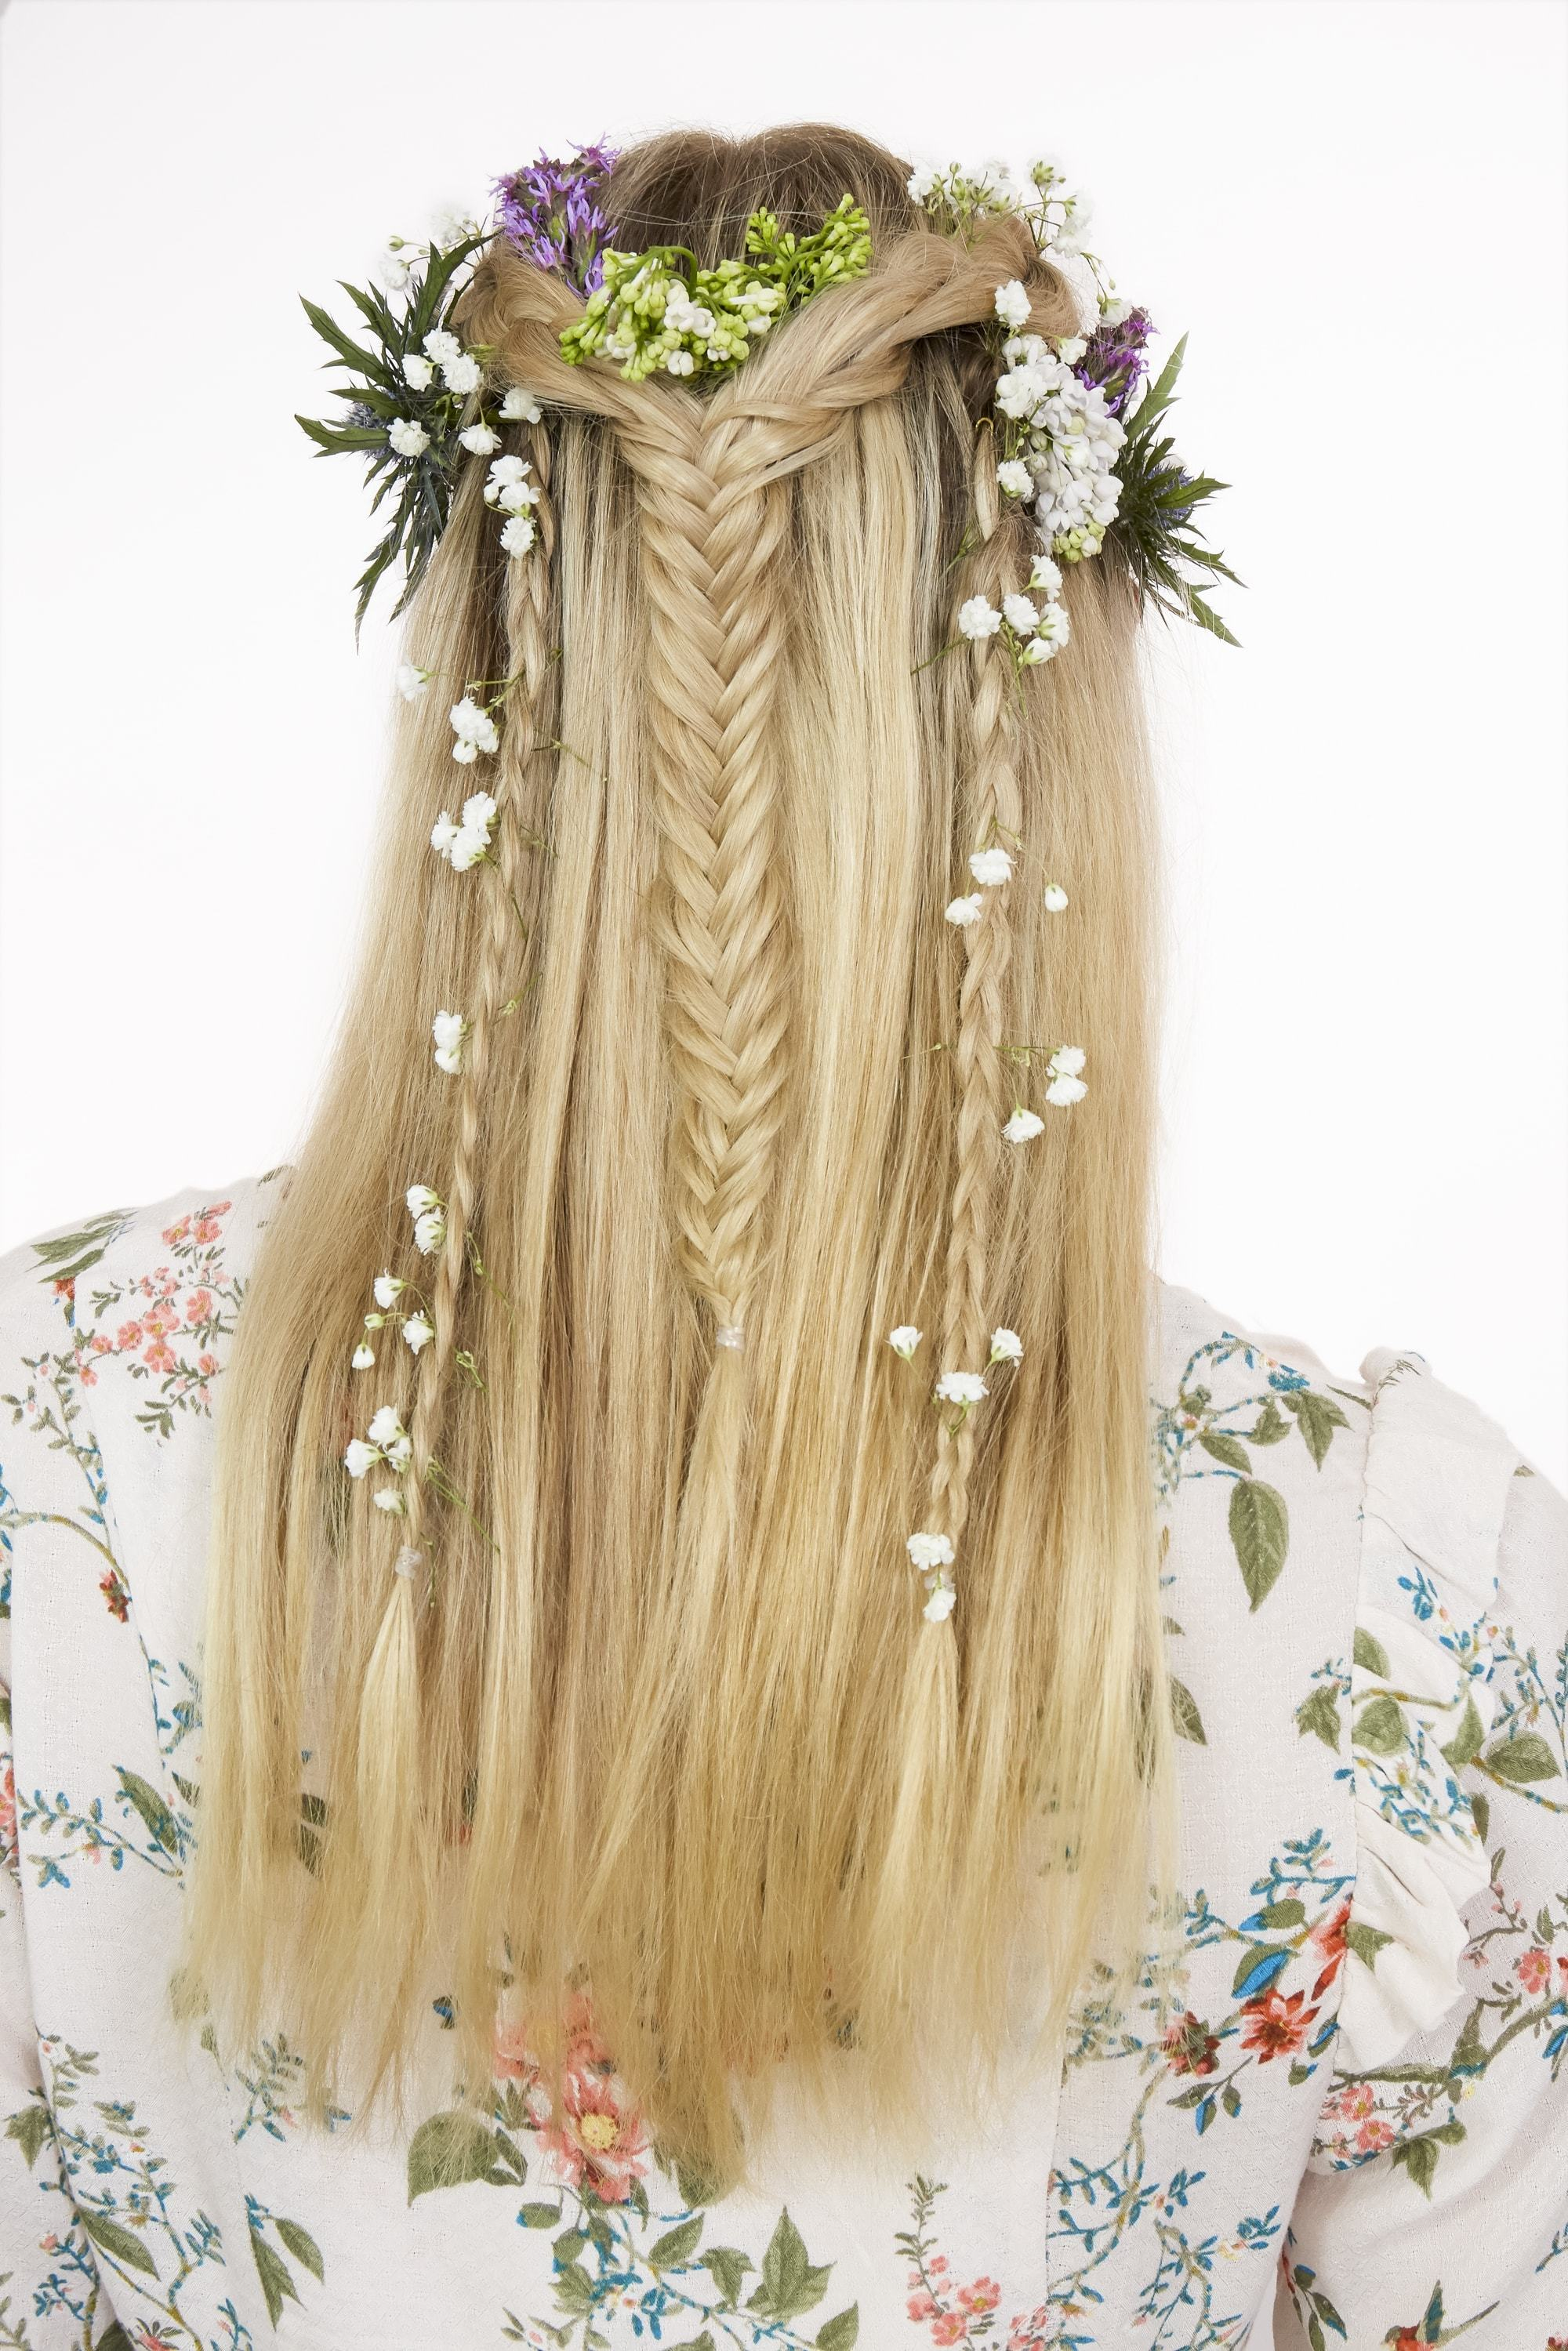 Braids for long hair: Woman with long straight highlighted blonde hair with fishtail braid half-up half-down adorned with flowers.